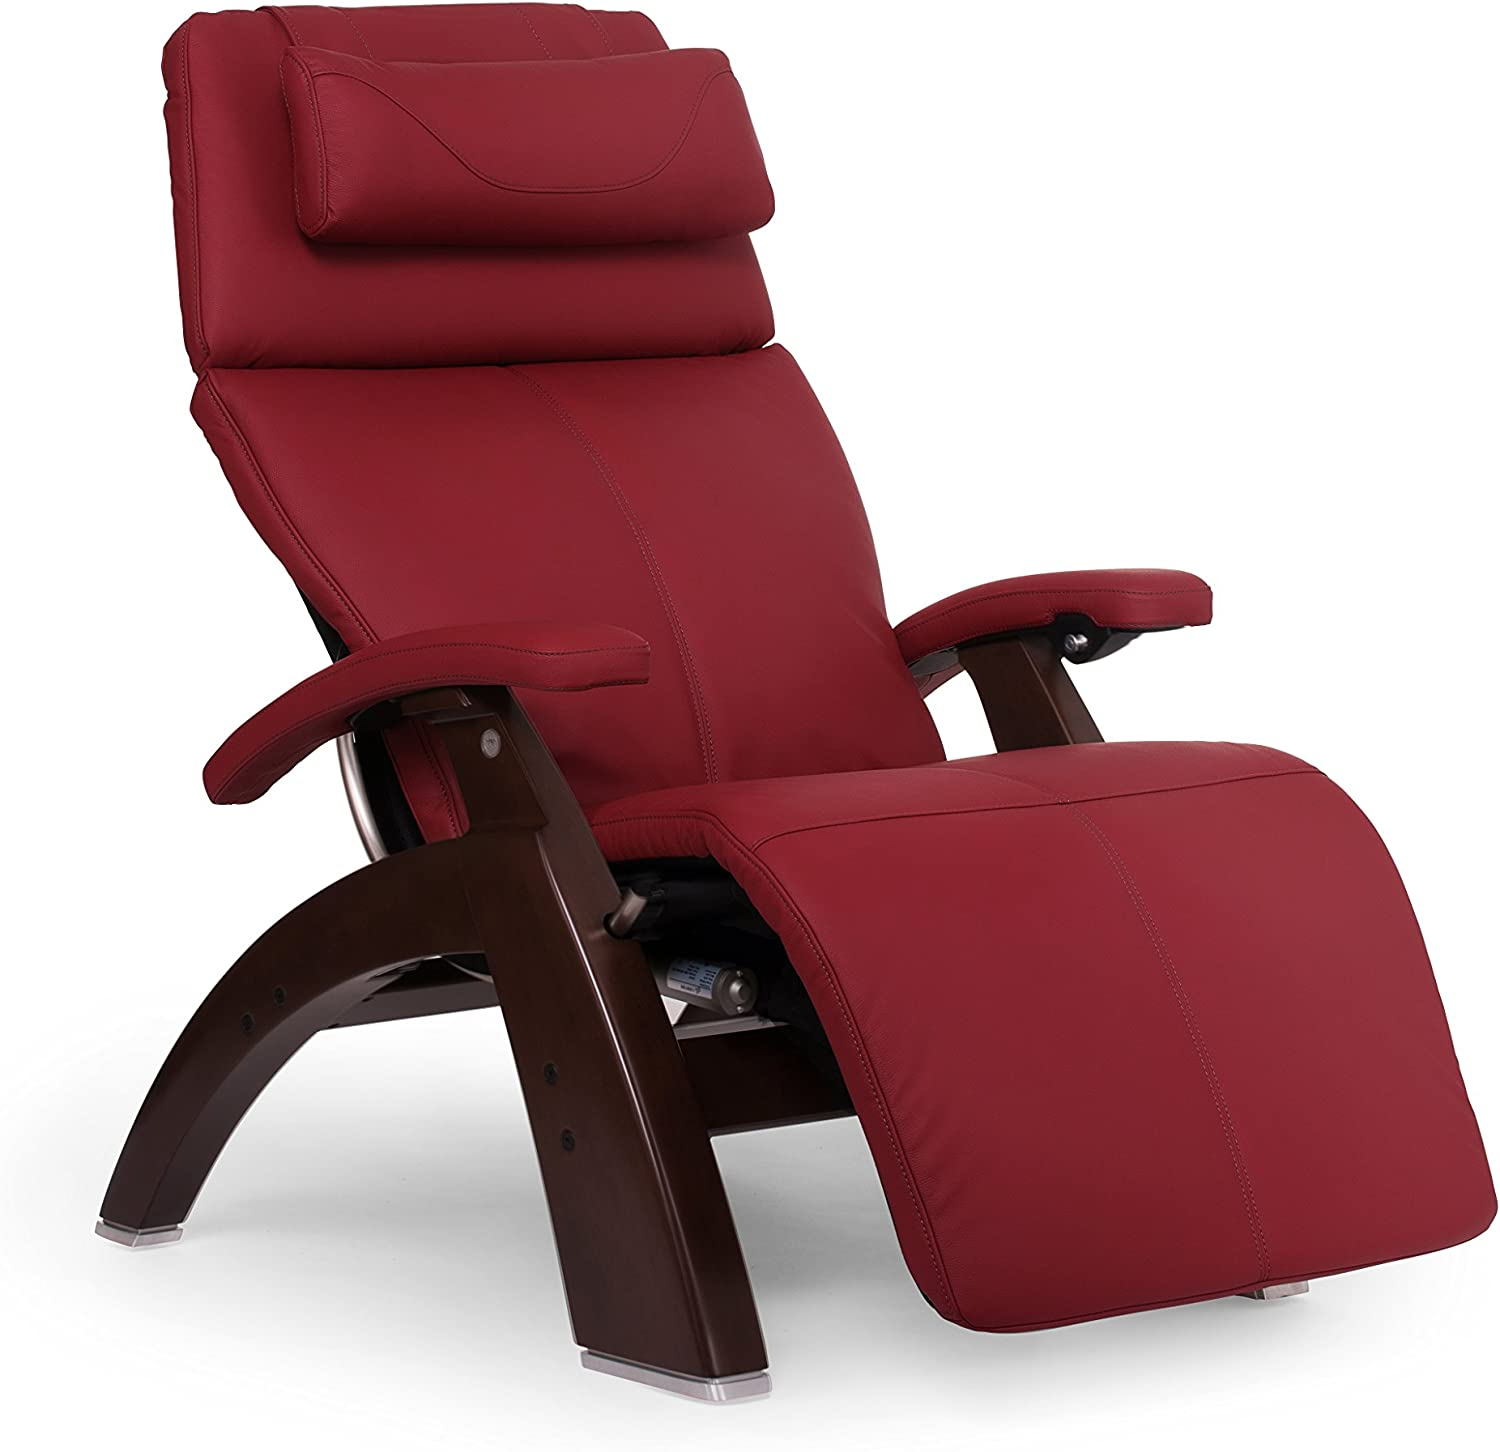 """Perfect Chair """"PC-610 Omni-Motion Classic"""" Top Grain Leather Zero Gravity Recliner, Red"""